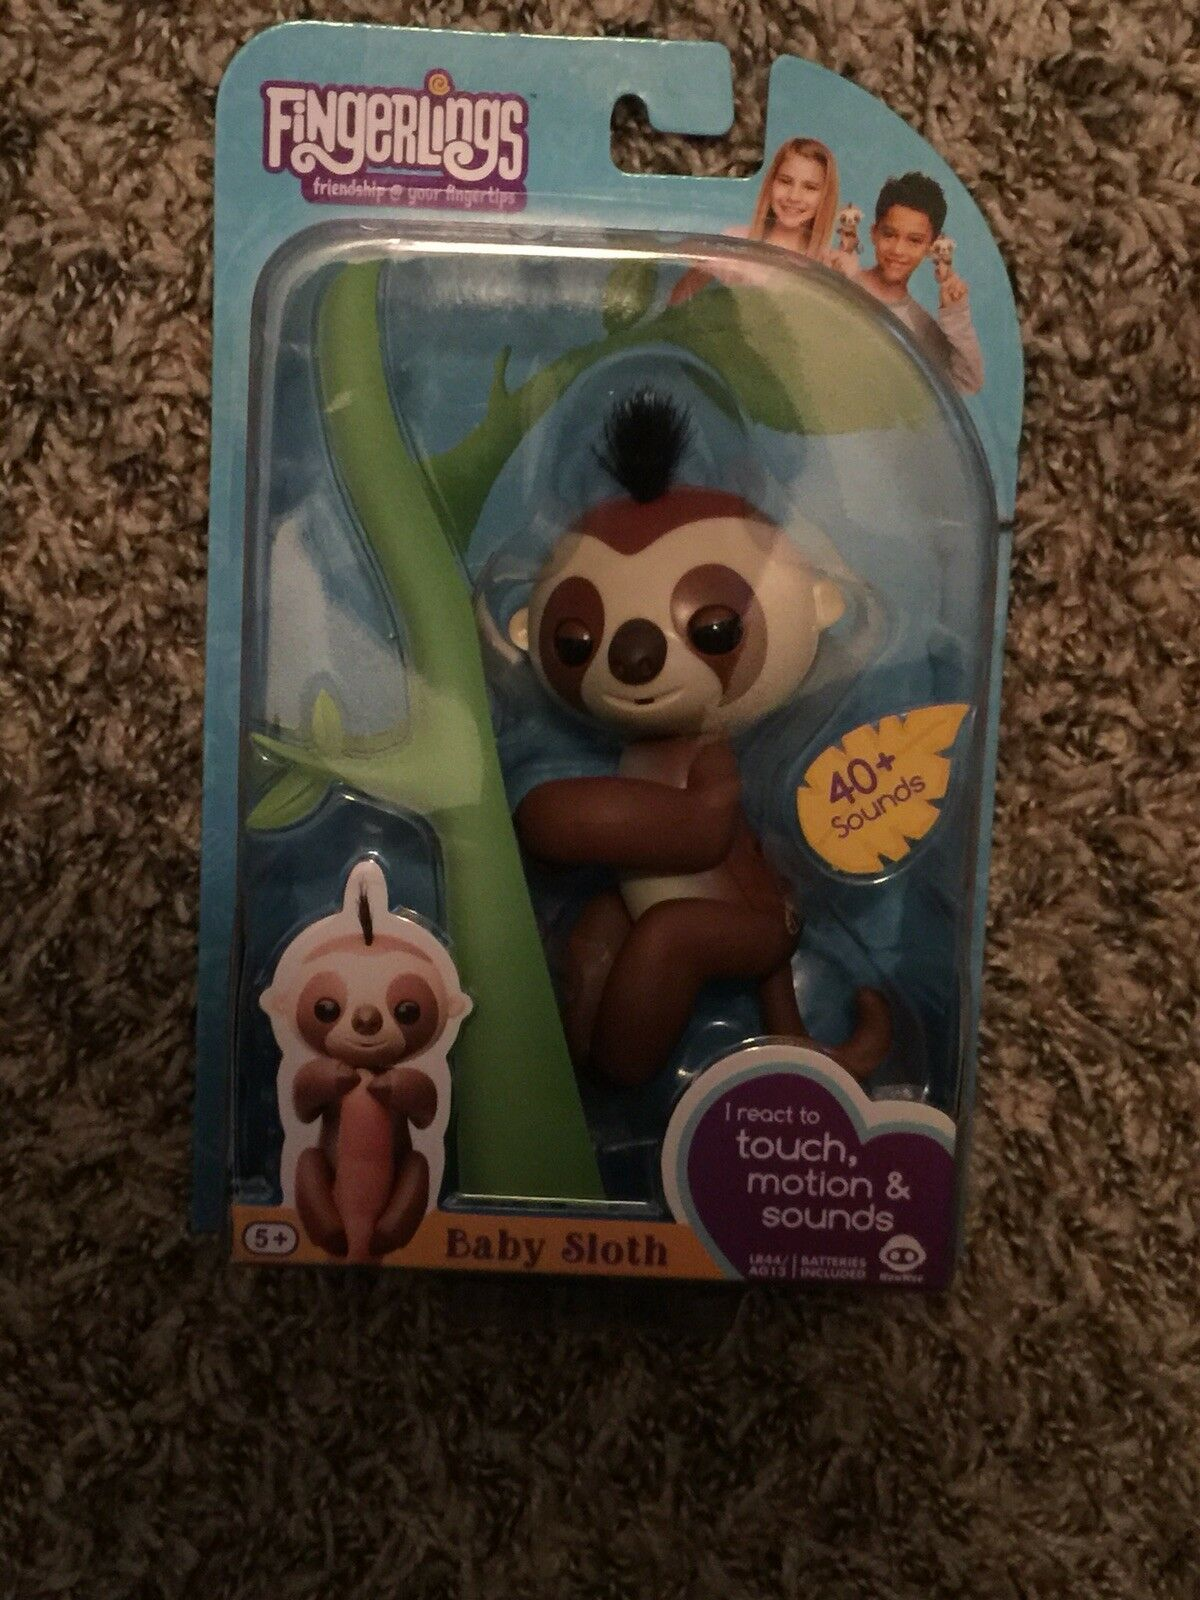 WowWee WowWee WowWee Fingerlings Interactive Baby Sloth Puppet, Kingsley (Brown) 86234e